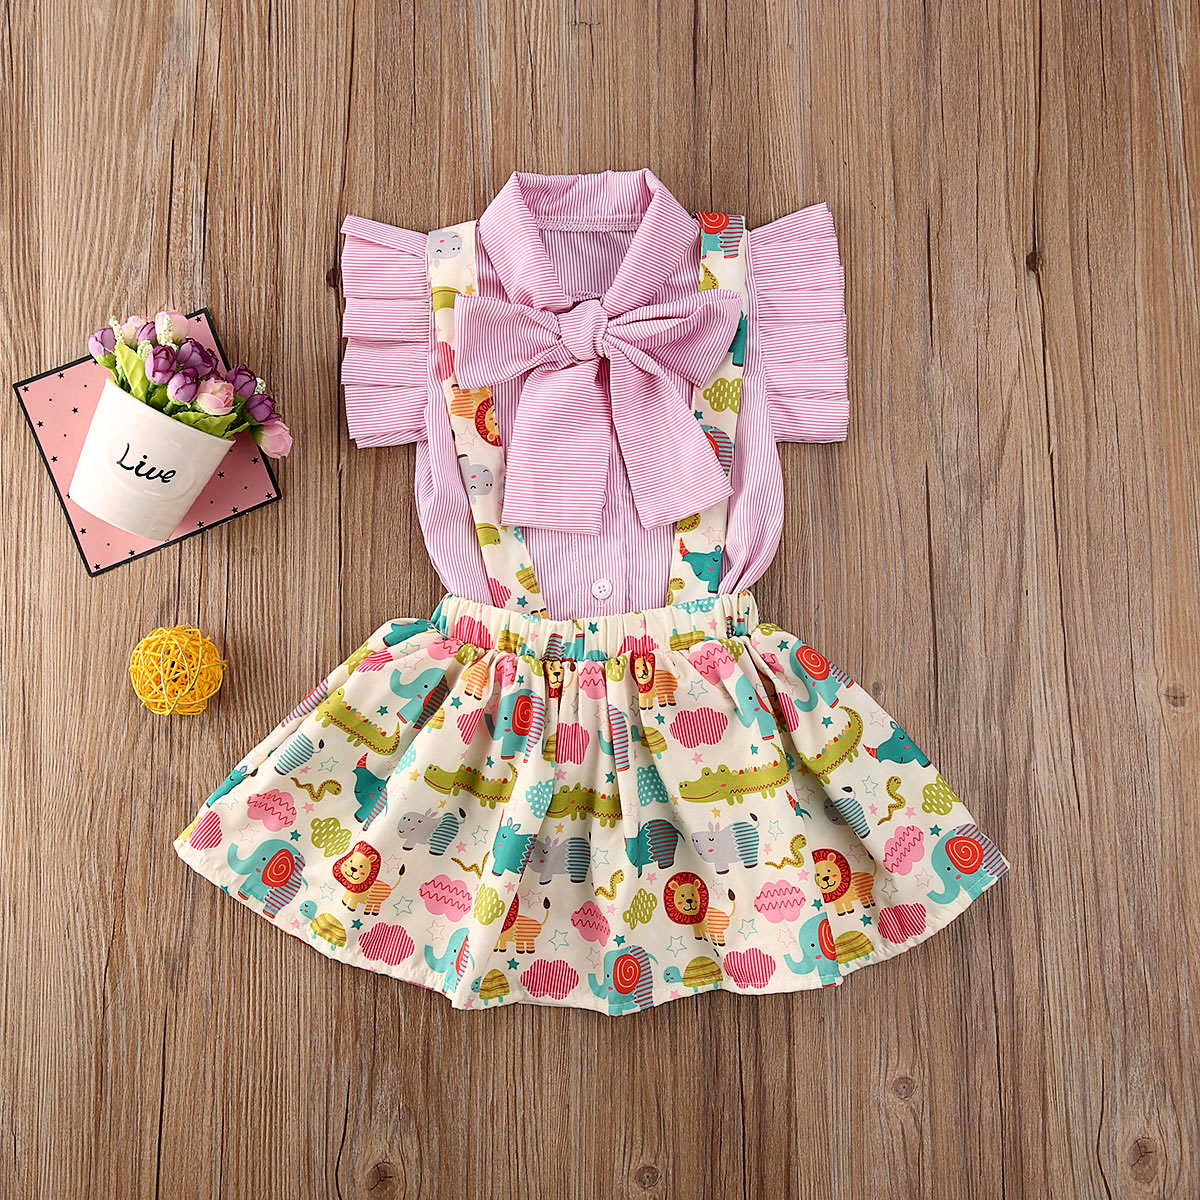 Pudcoco Toddler Baby Girl Clothes Striped Short Sleeve Bowknot Shirt Tops Cartoon Animals Print Strap Mini Skirt 2Pcs Outfit Set